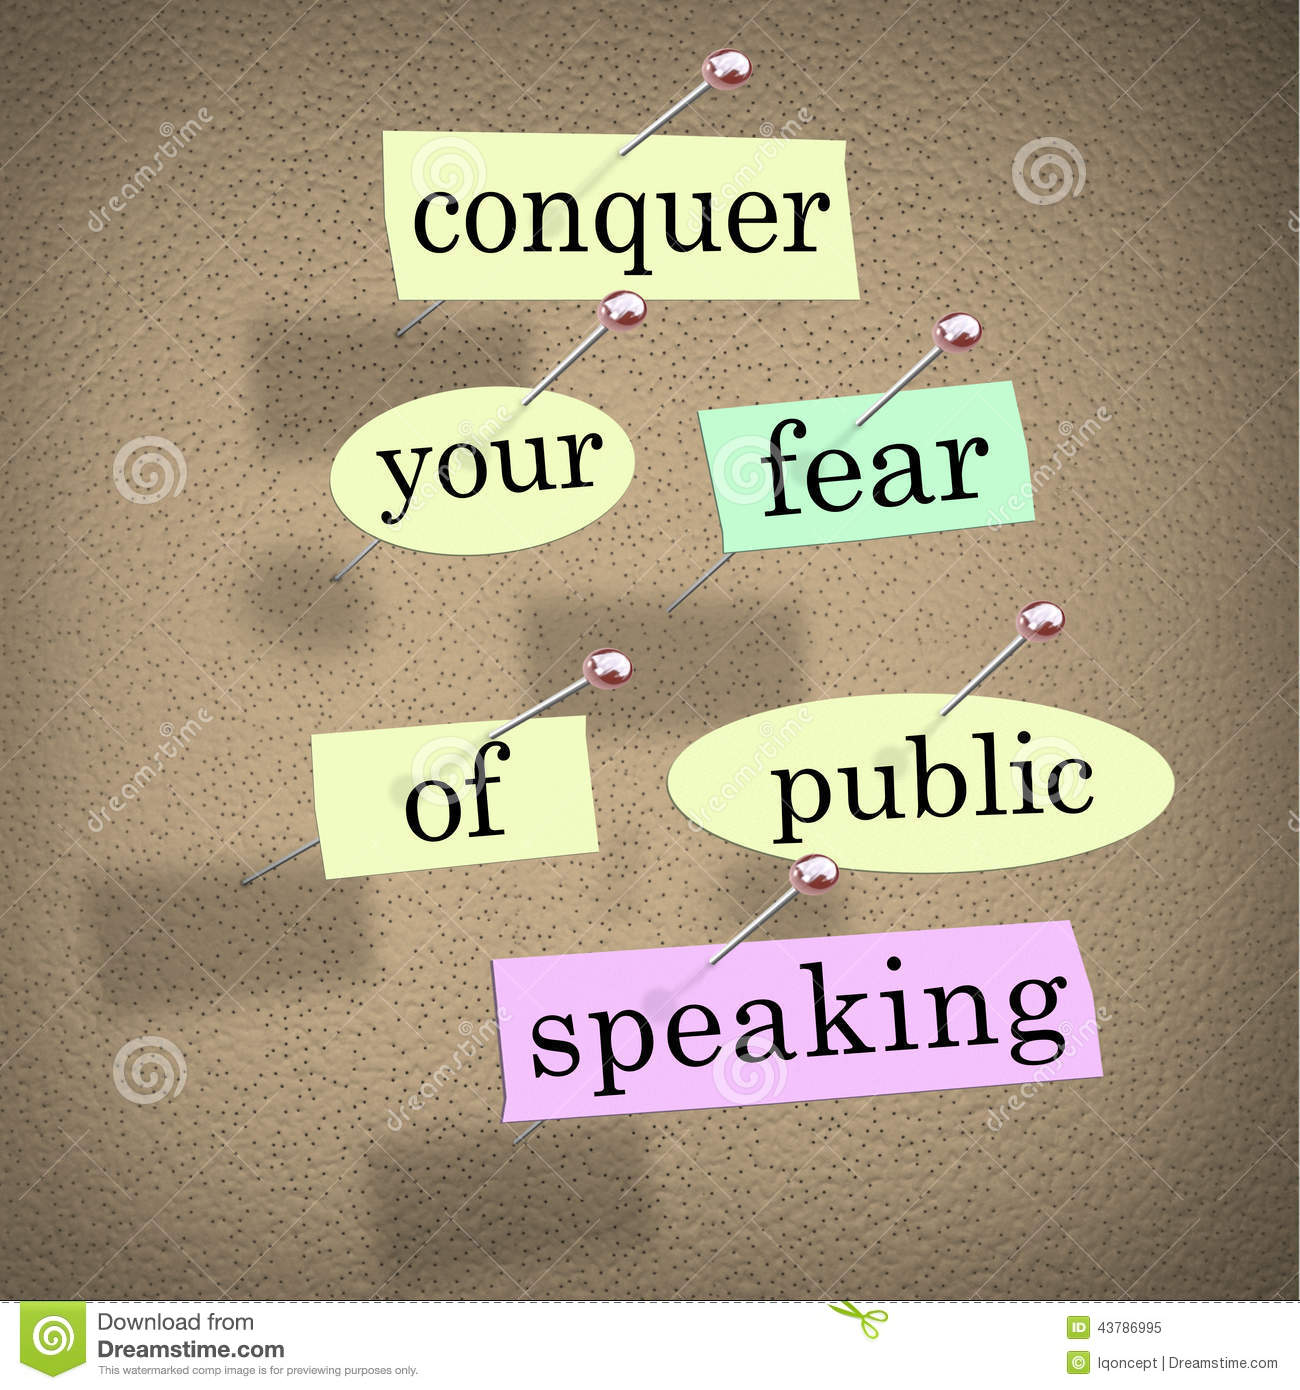 essay fear public speaking Public speaking essay fear of public speaking research paper nov 30, introduction to pause when i lose my train of the present time.